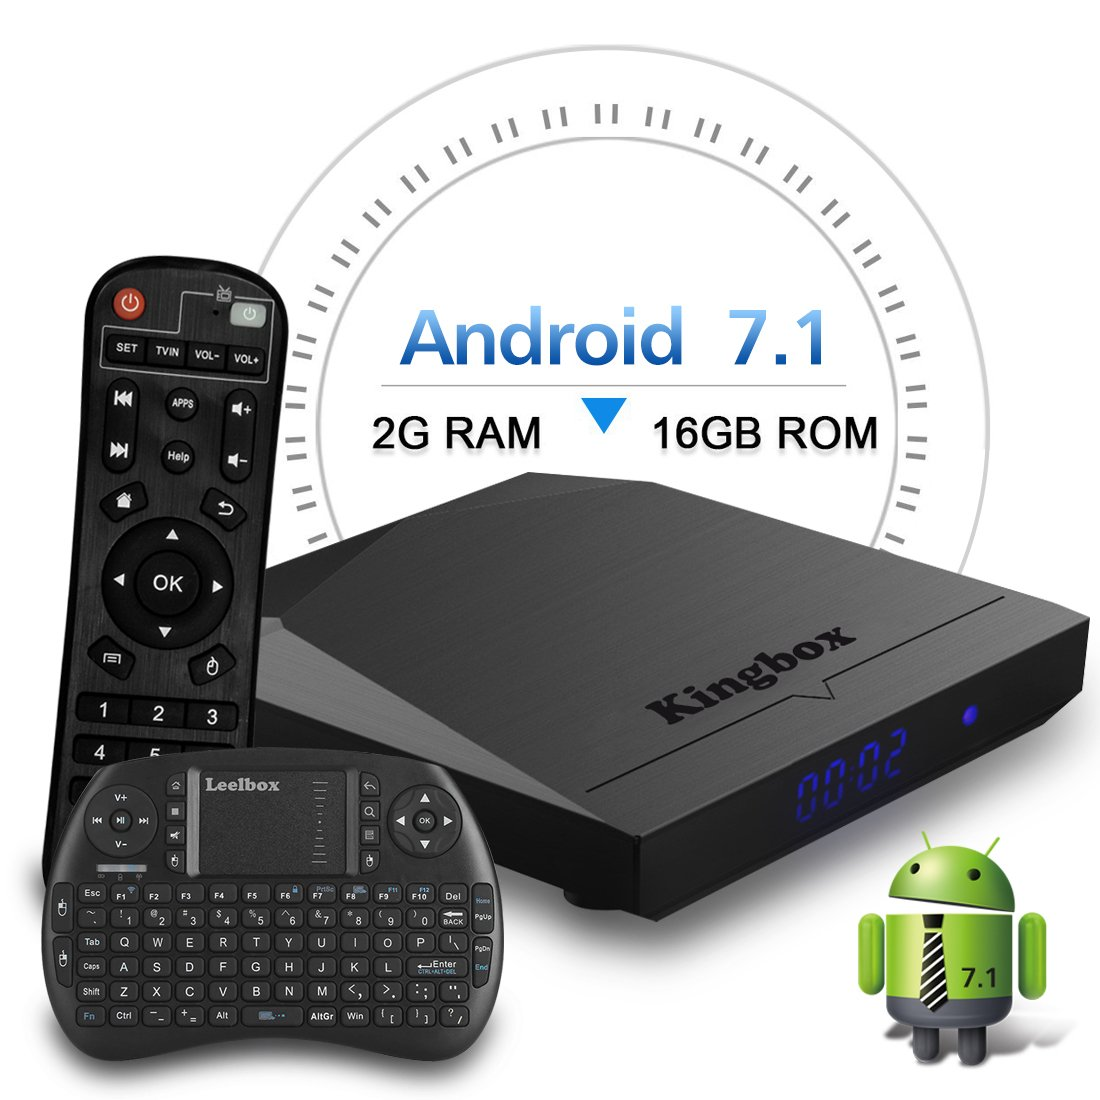 Kingbox Android TV Box, K3 Android 7.1 Box with Amlogic S912 Octa-Core 64 Bits 2GB/16GB support Dual WiFi 2.4+5GHz/4K UHD/BT 4.0/1000M LAN Android Smart TV Box, Free Mini Keyboard [Top Configuration] by kingbox